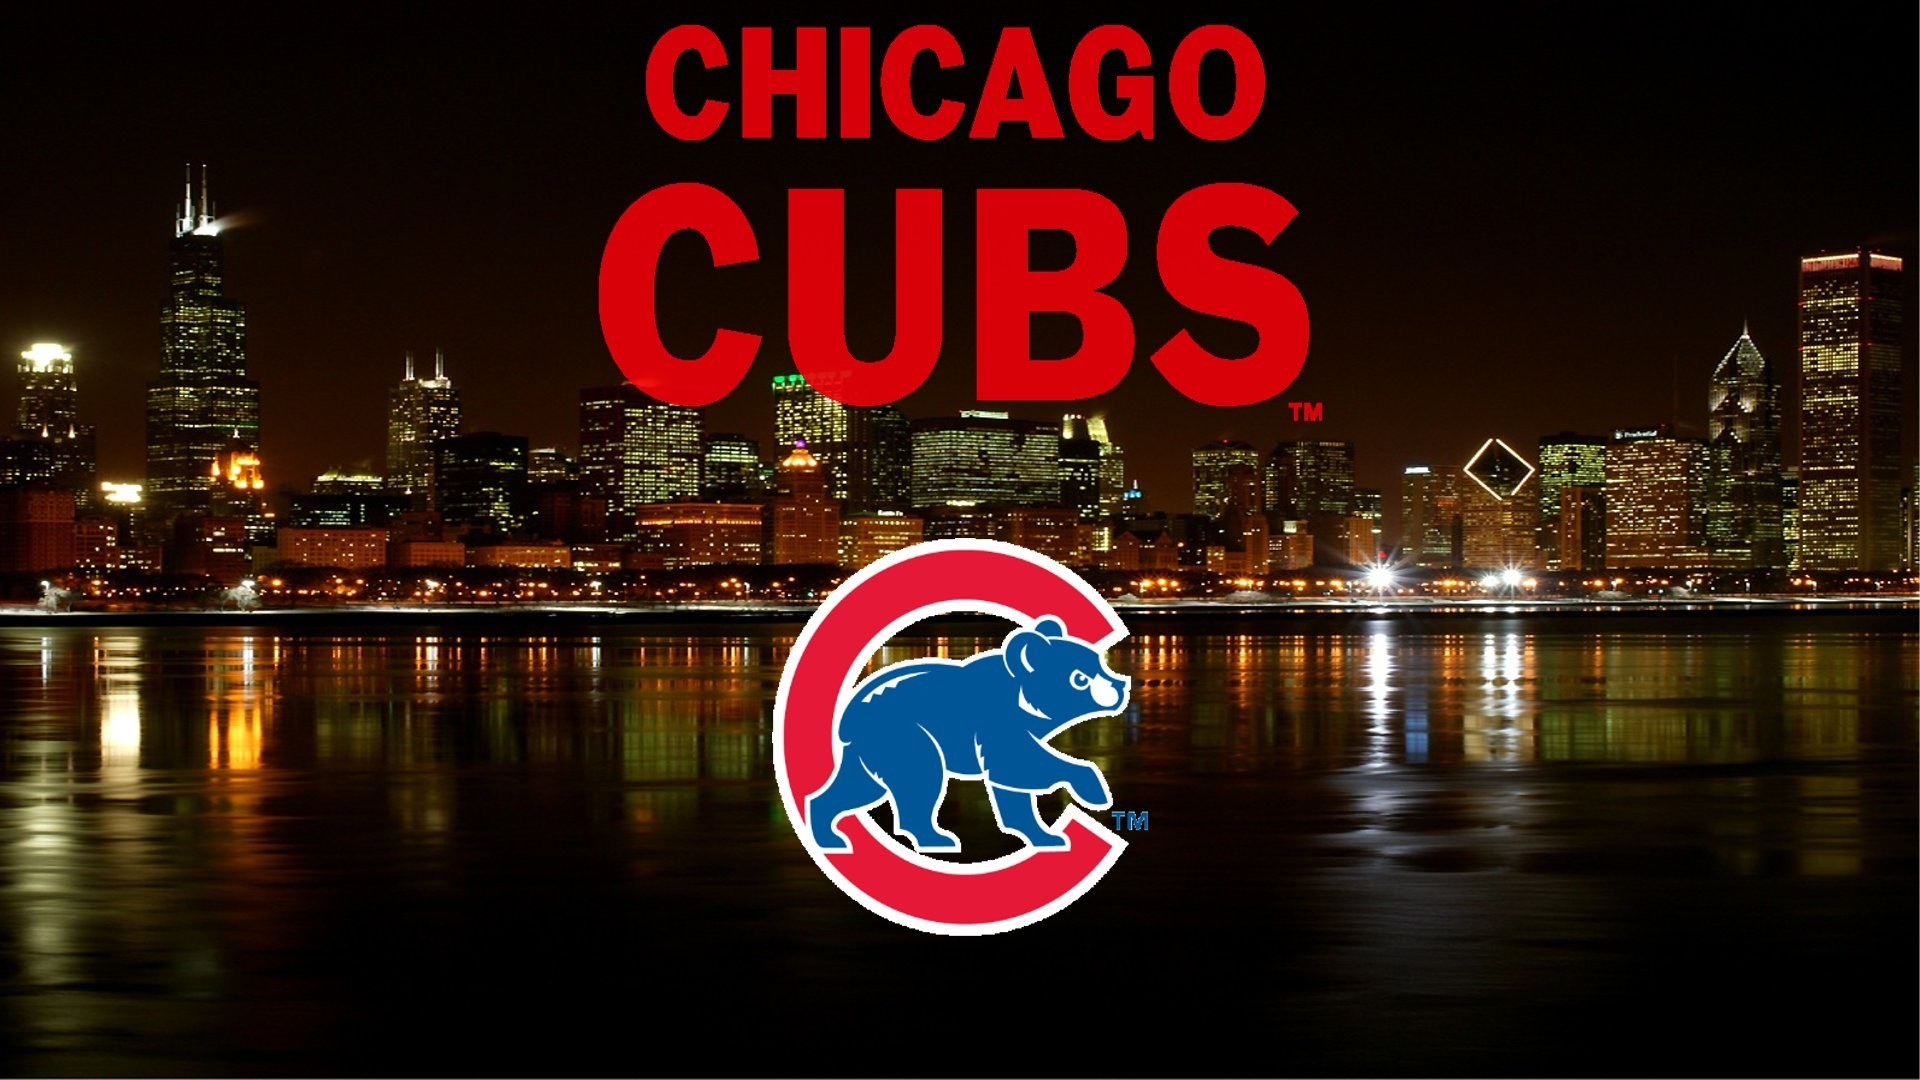 1920x1080 ... chicago cubs wallpaper for android wallpapersafari ...